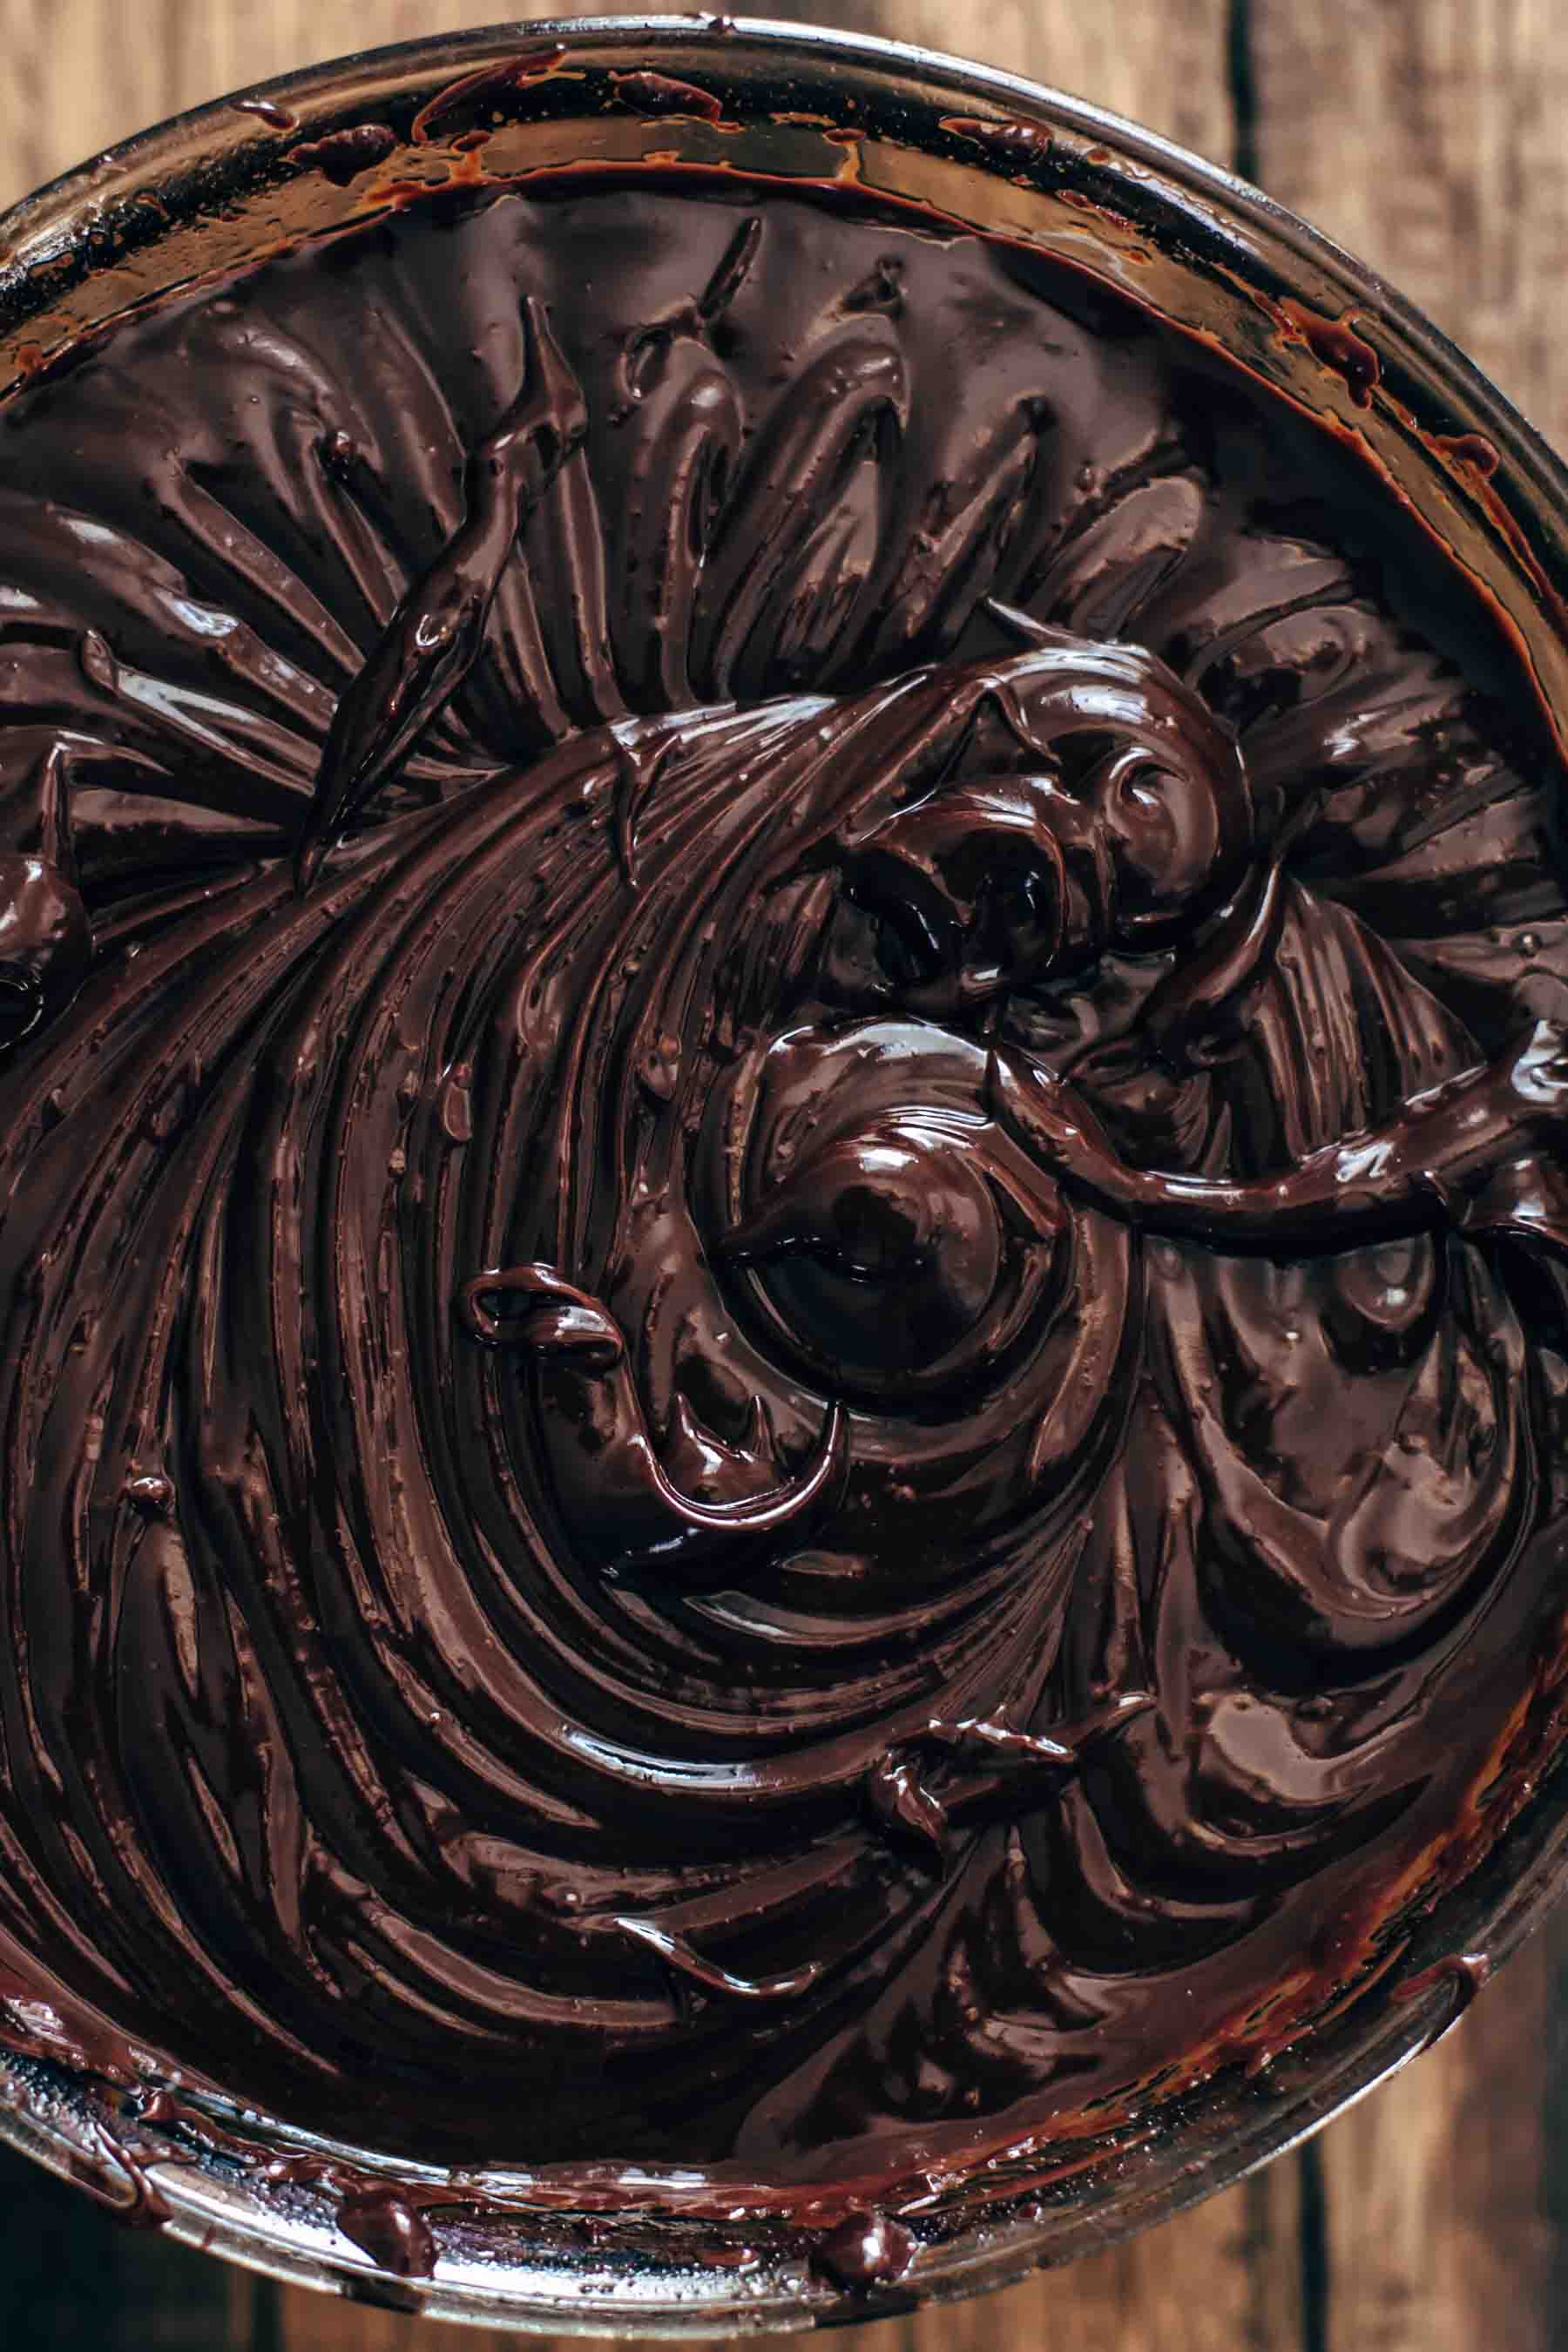 Whipped chocolate ganache in glass bowl on wooden surface